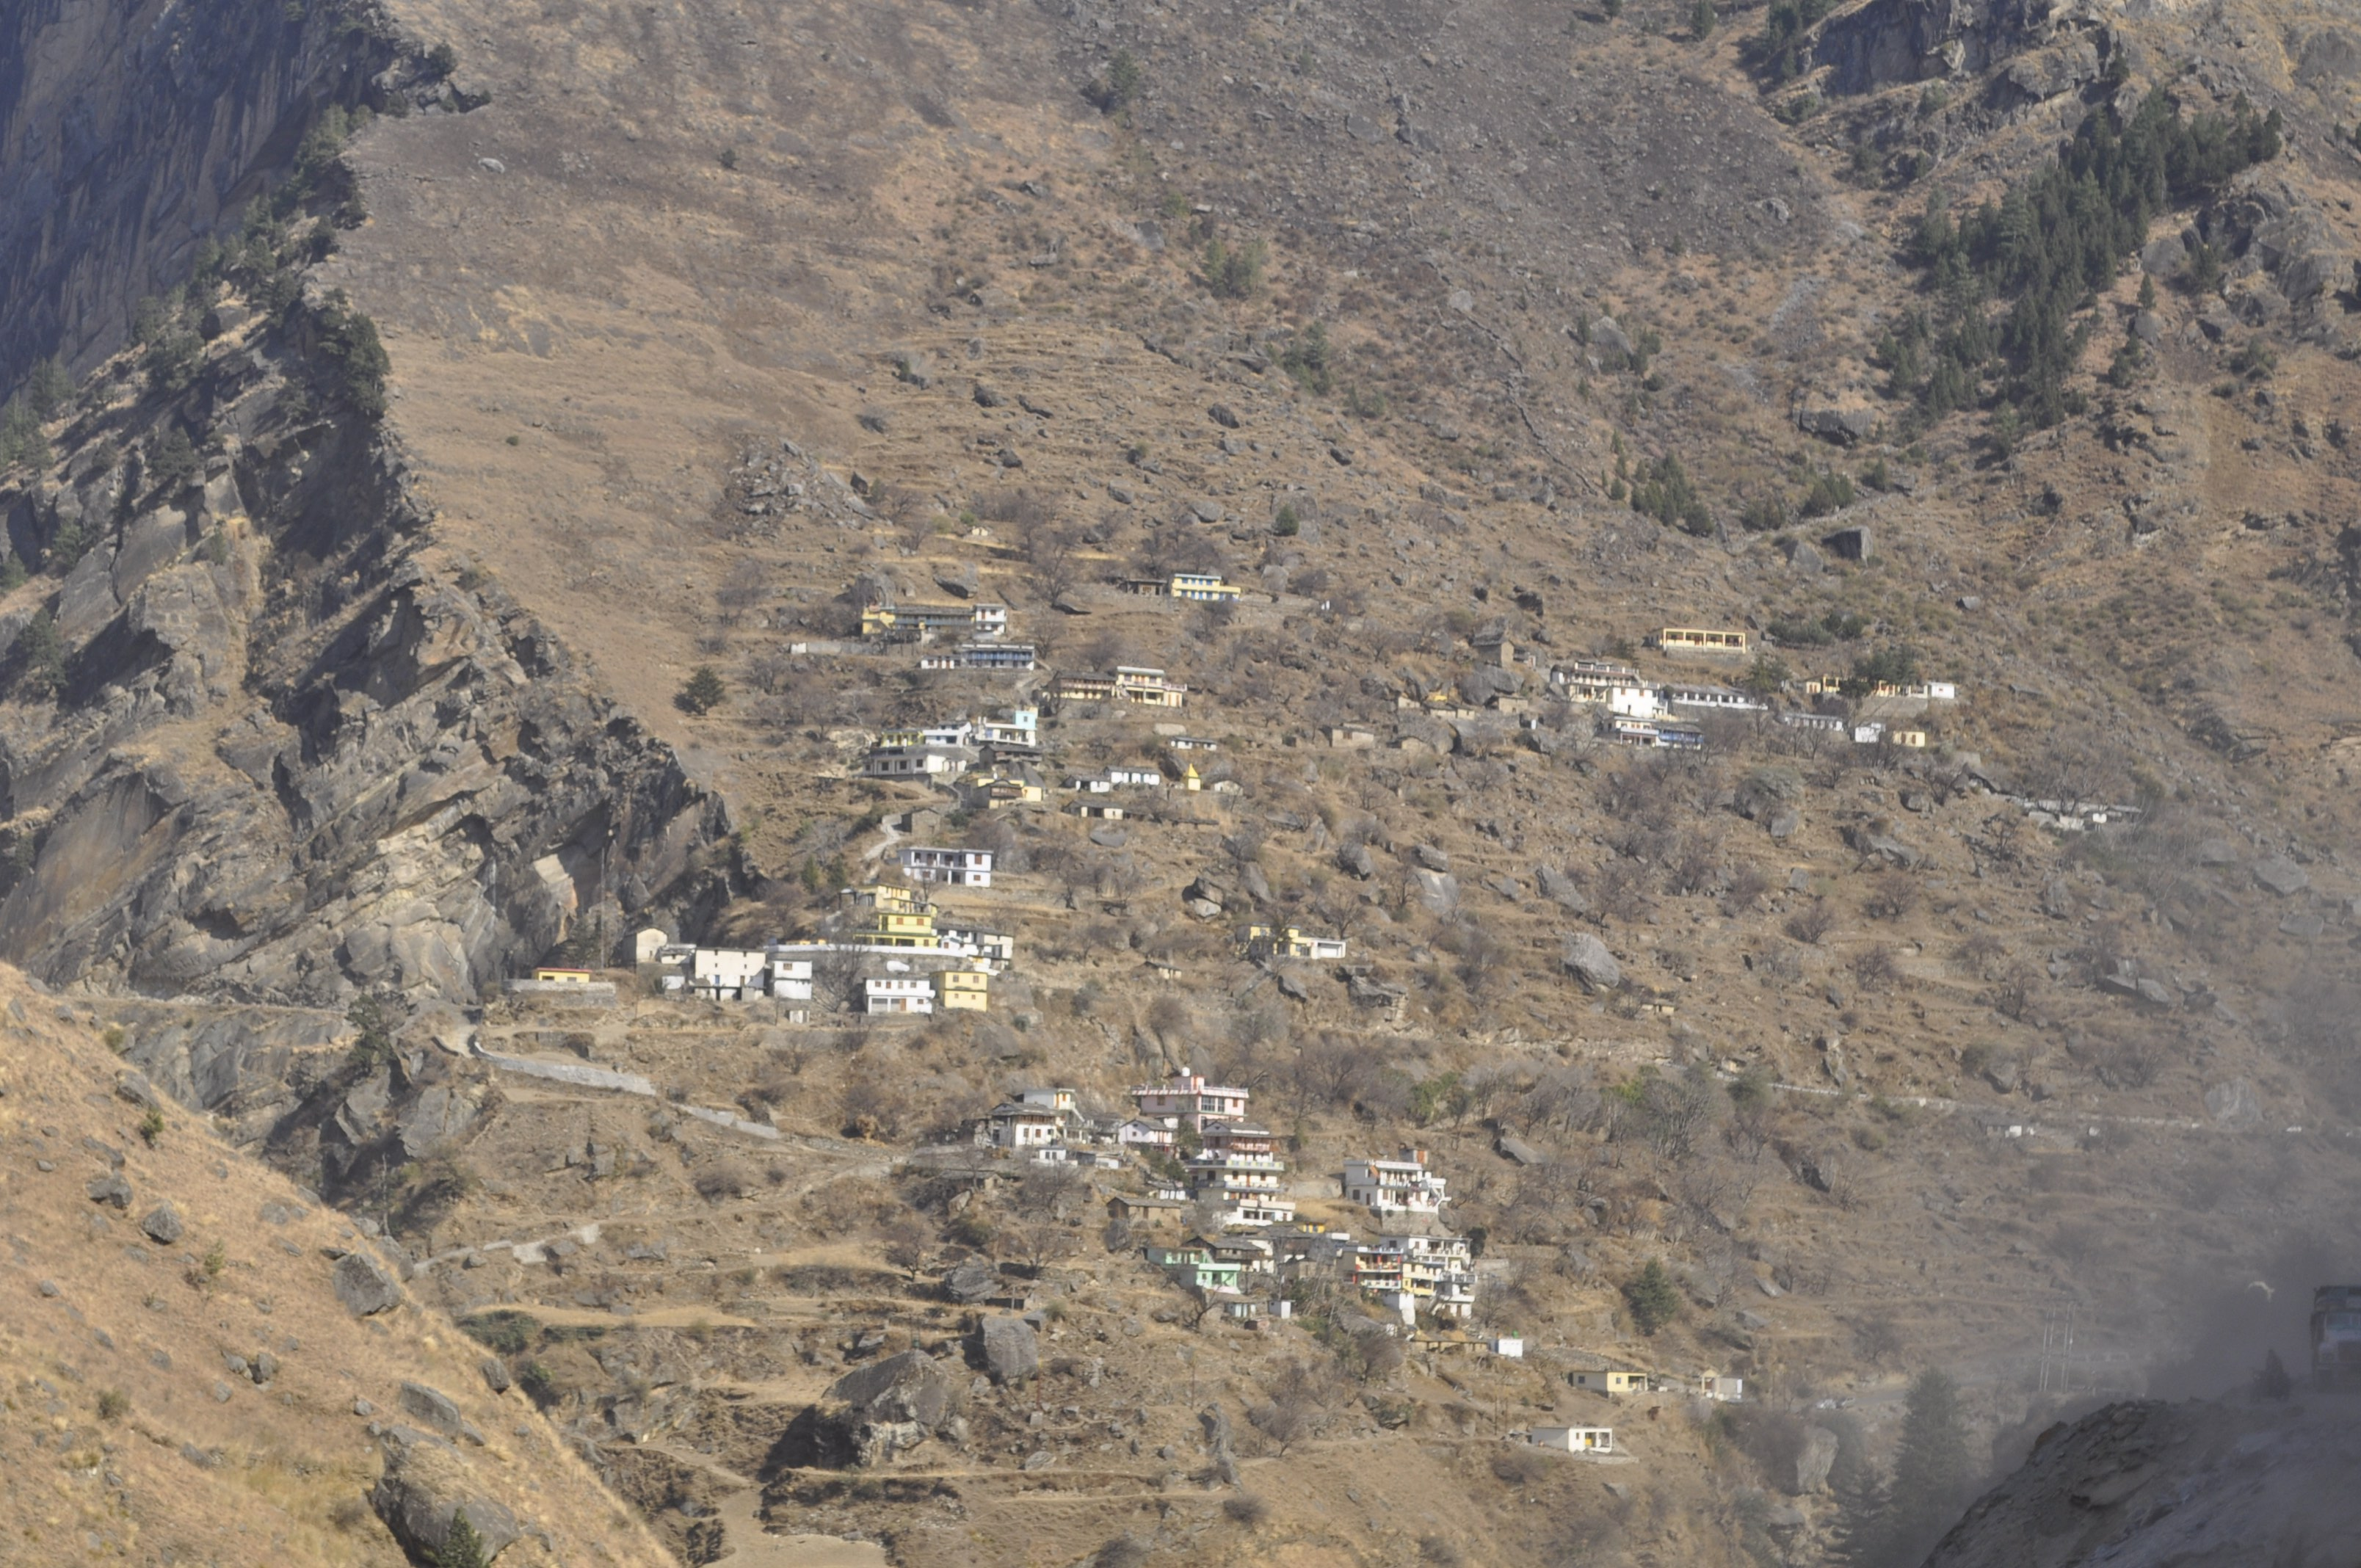 Settlements on hill slopes in Nanda Devi Biosphere -- Near Tapoban